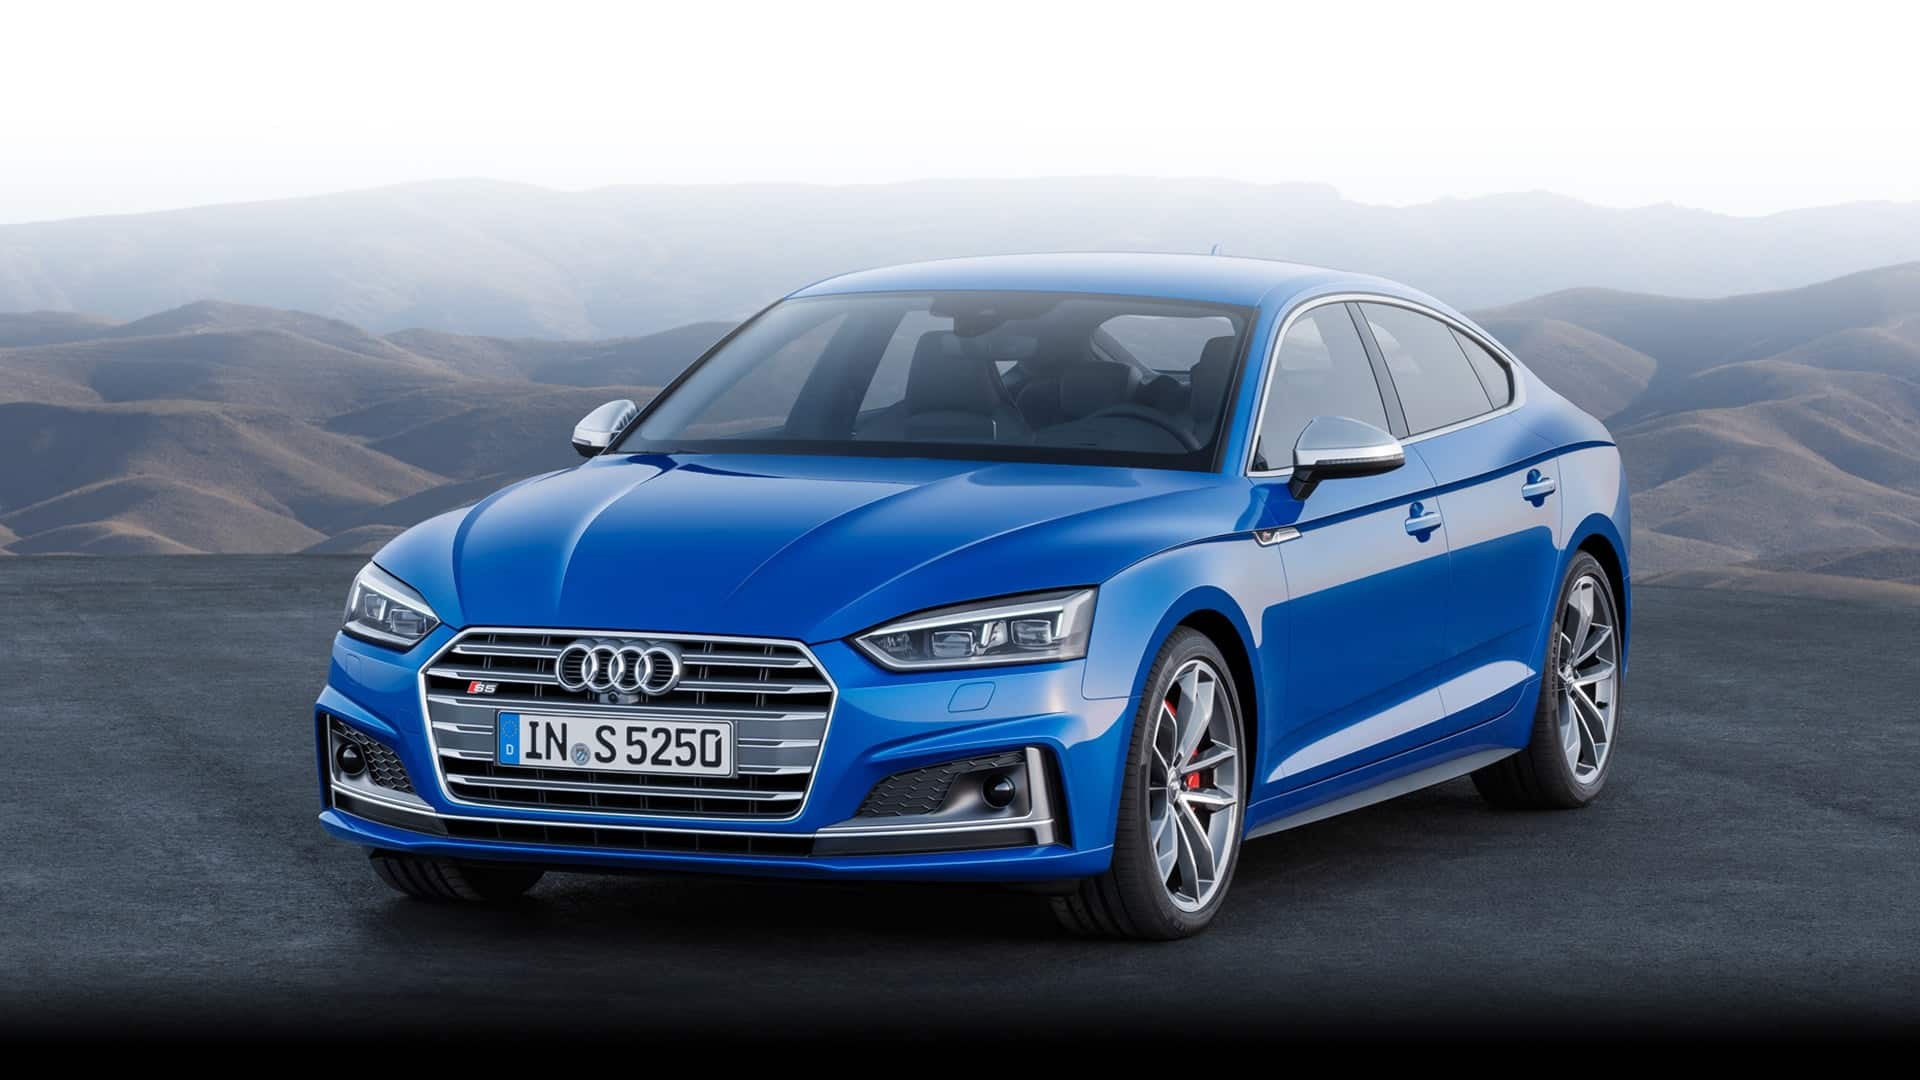 The 2018 S5 Sportback